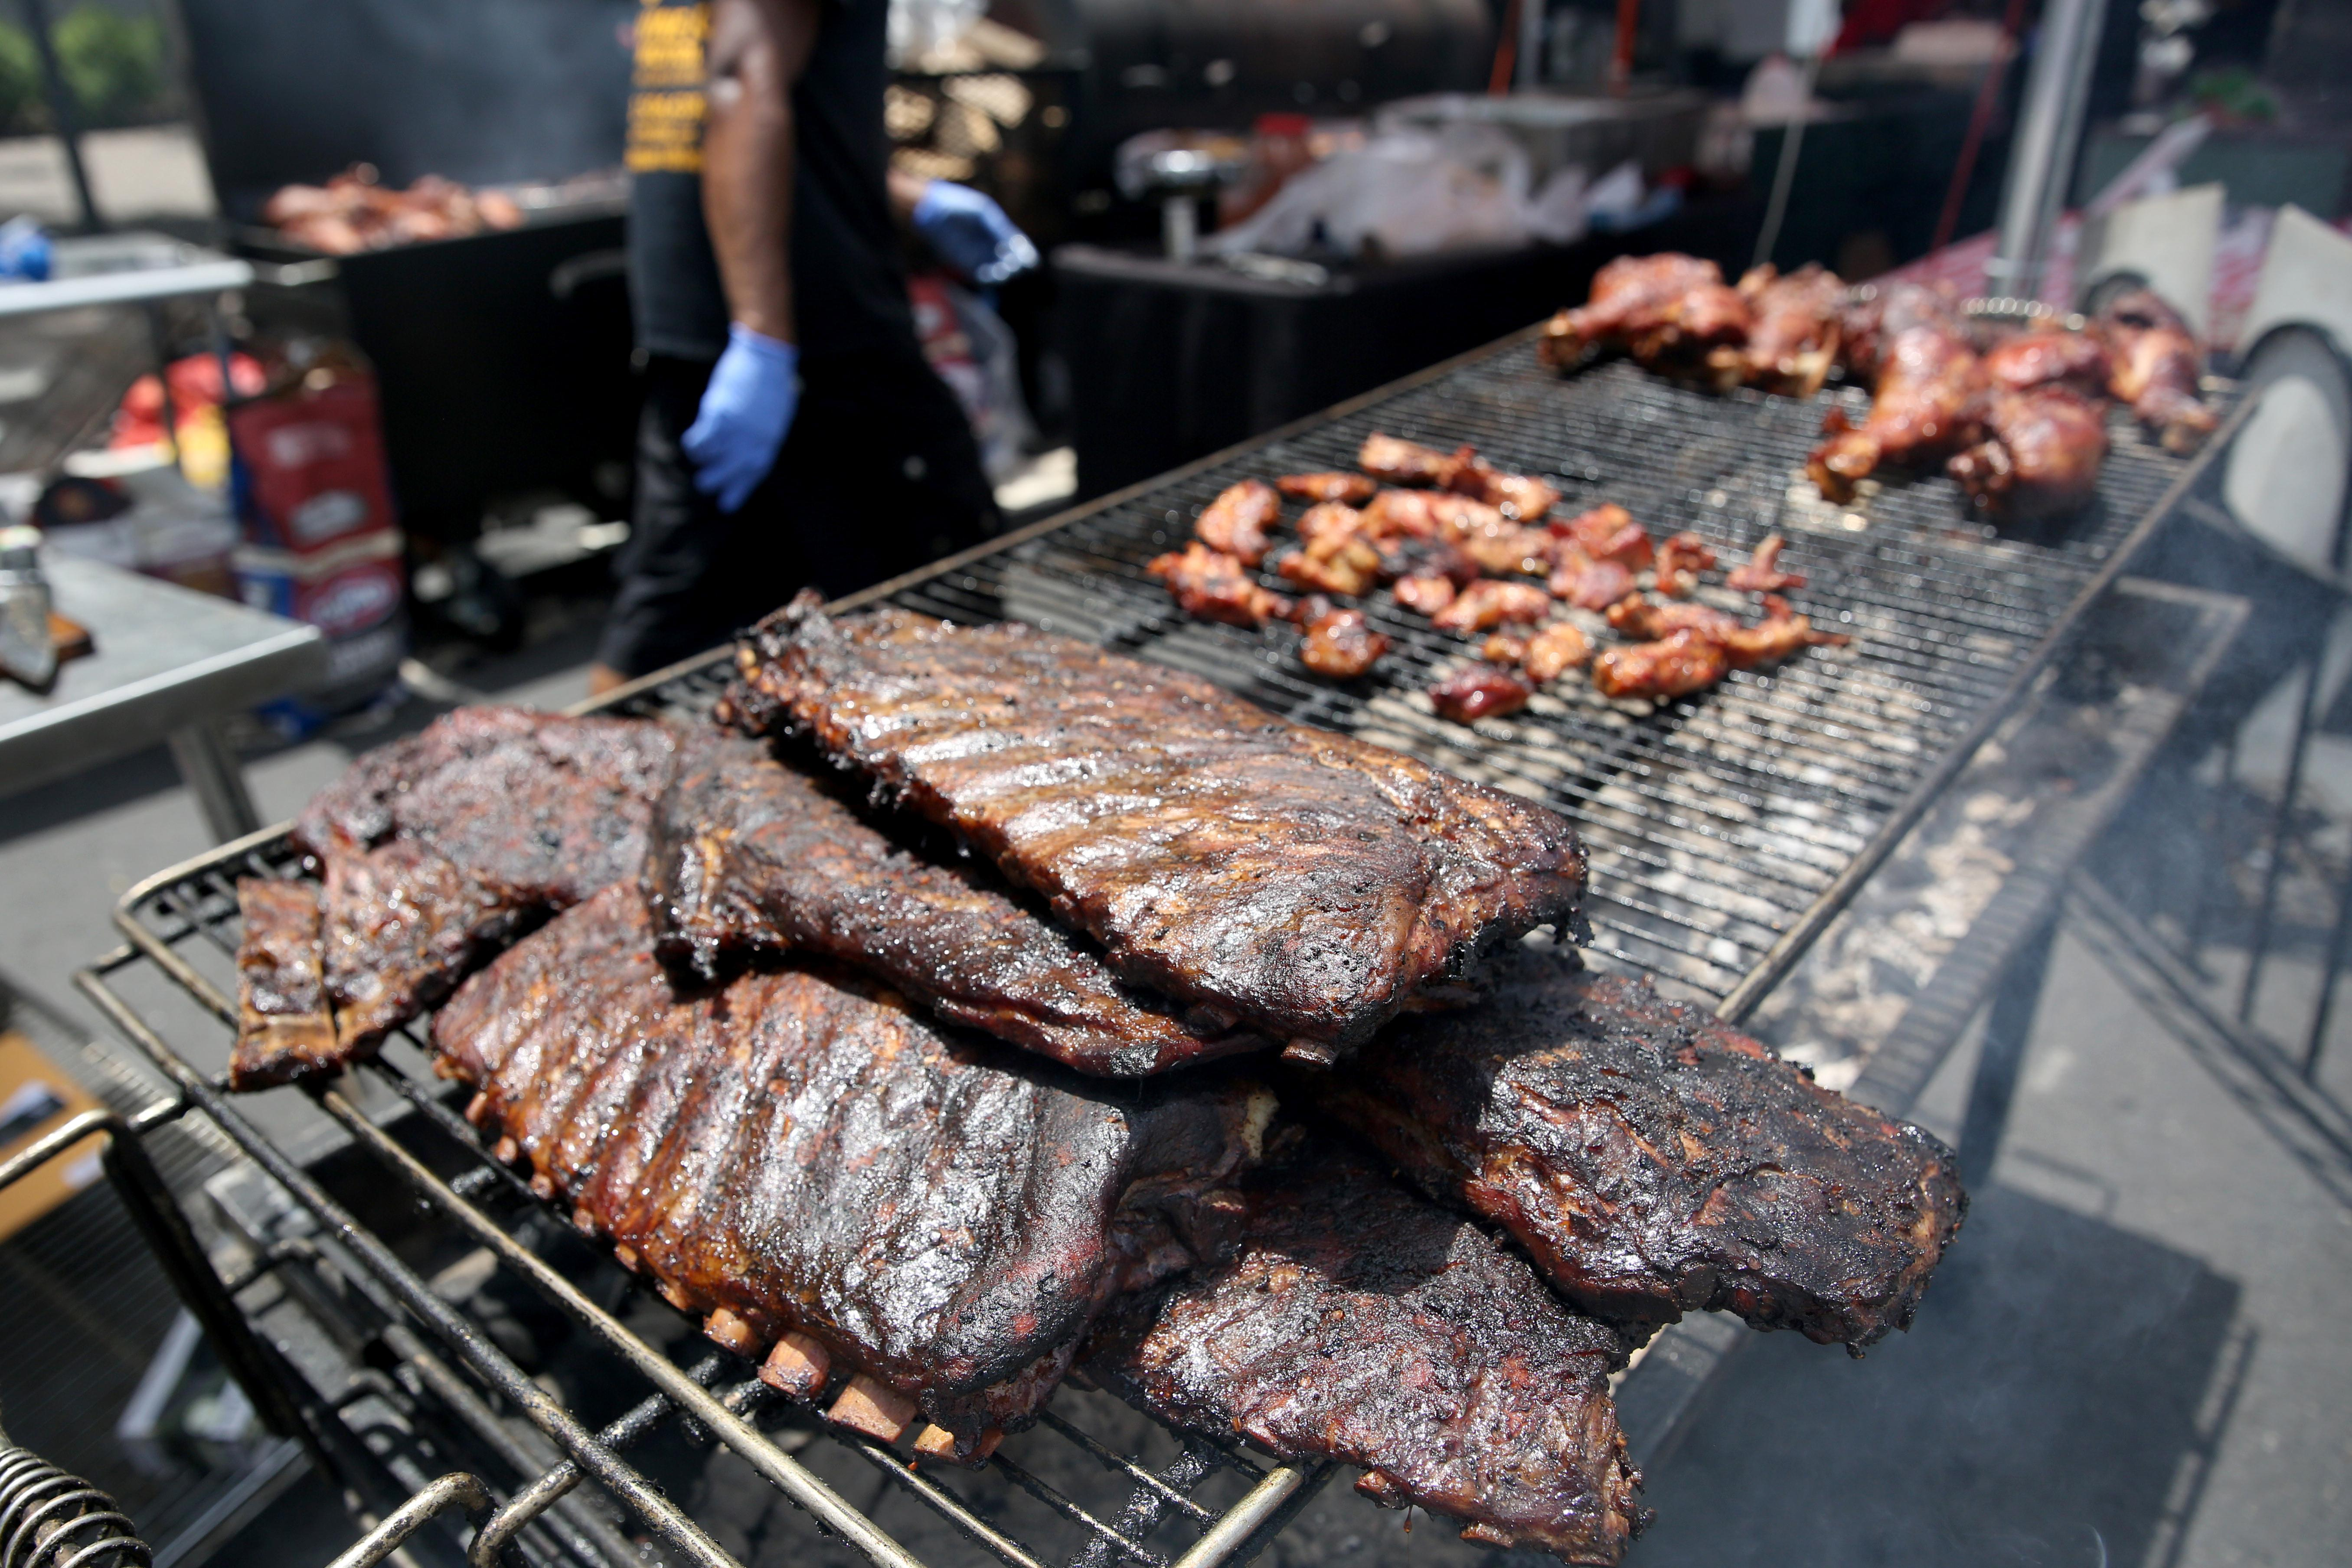 The smell of barbecue wafted over D.C. this weekend during the the 25th annual Capital Barbecue Battle. The two-day festival let visitors try out new food while pit masters battled it out to win prizes. (Amanda Andrade-Rhoades/DC Refined)